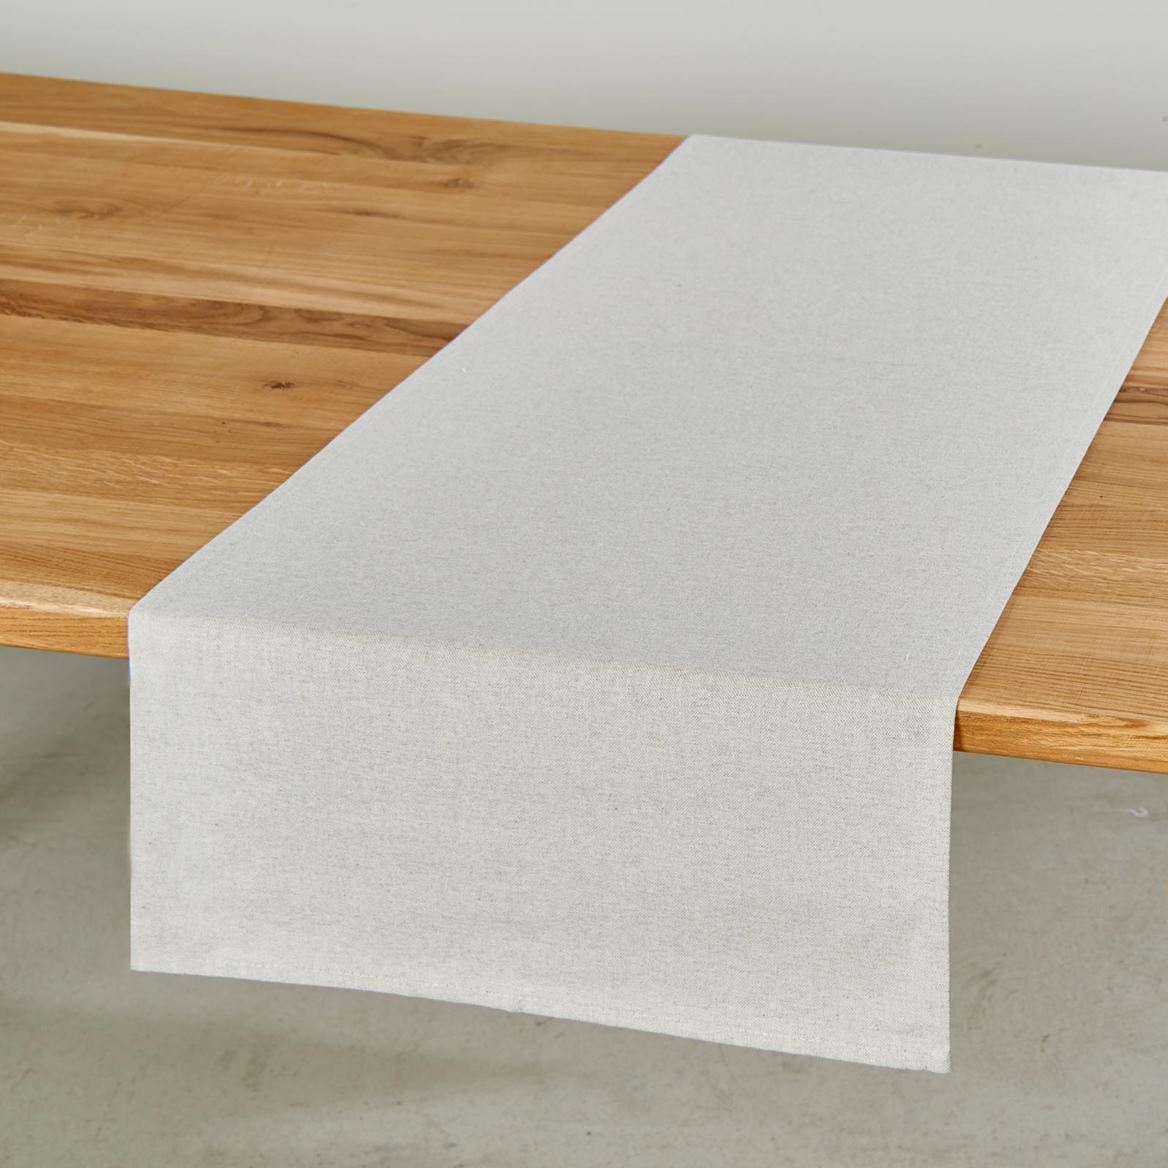 MELANGE Chemin de table beige Larg. 45 x Long. 138 cm_melange-chemin-de-table-beige-larg--45-x-long--138-cm